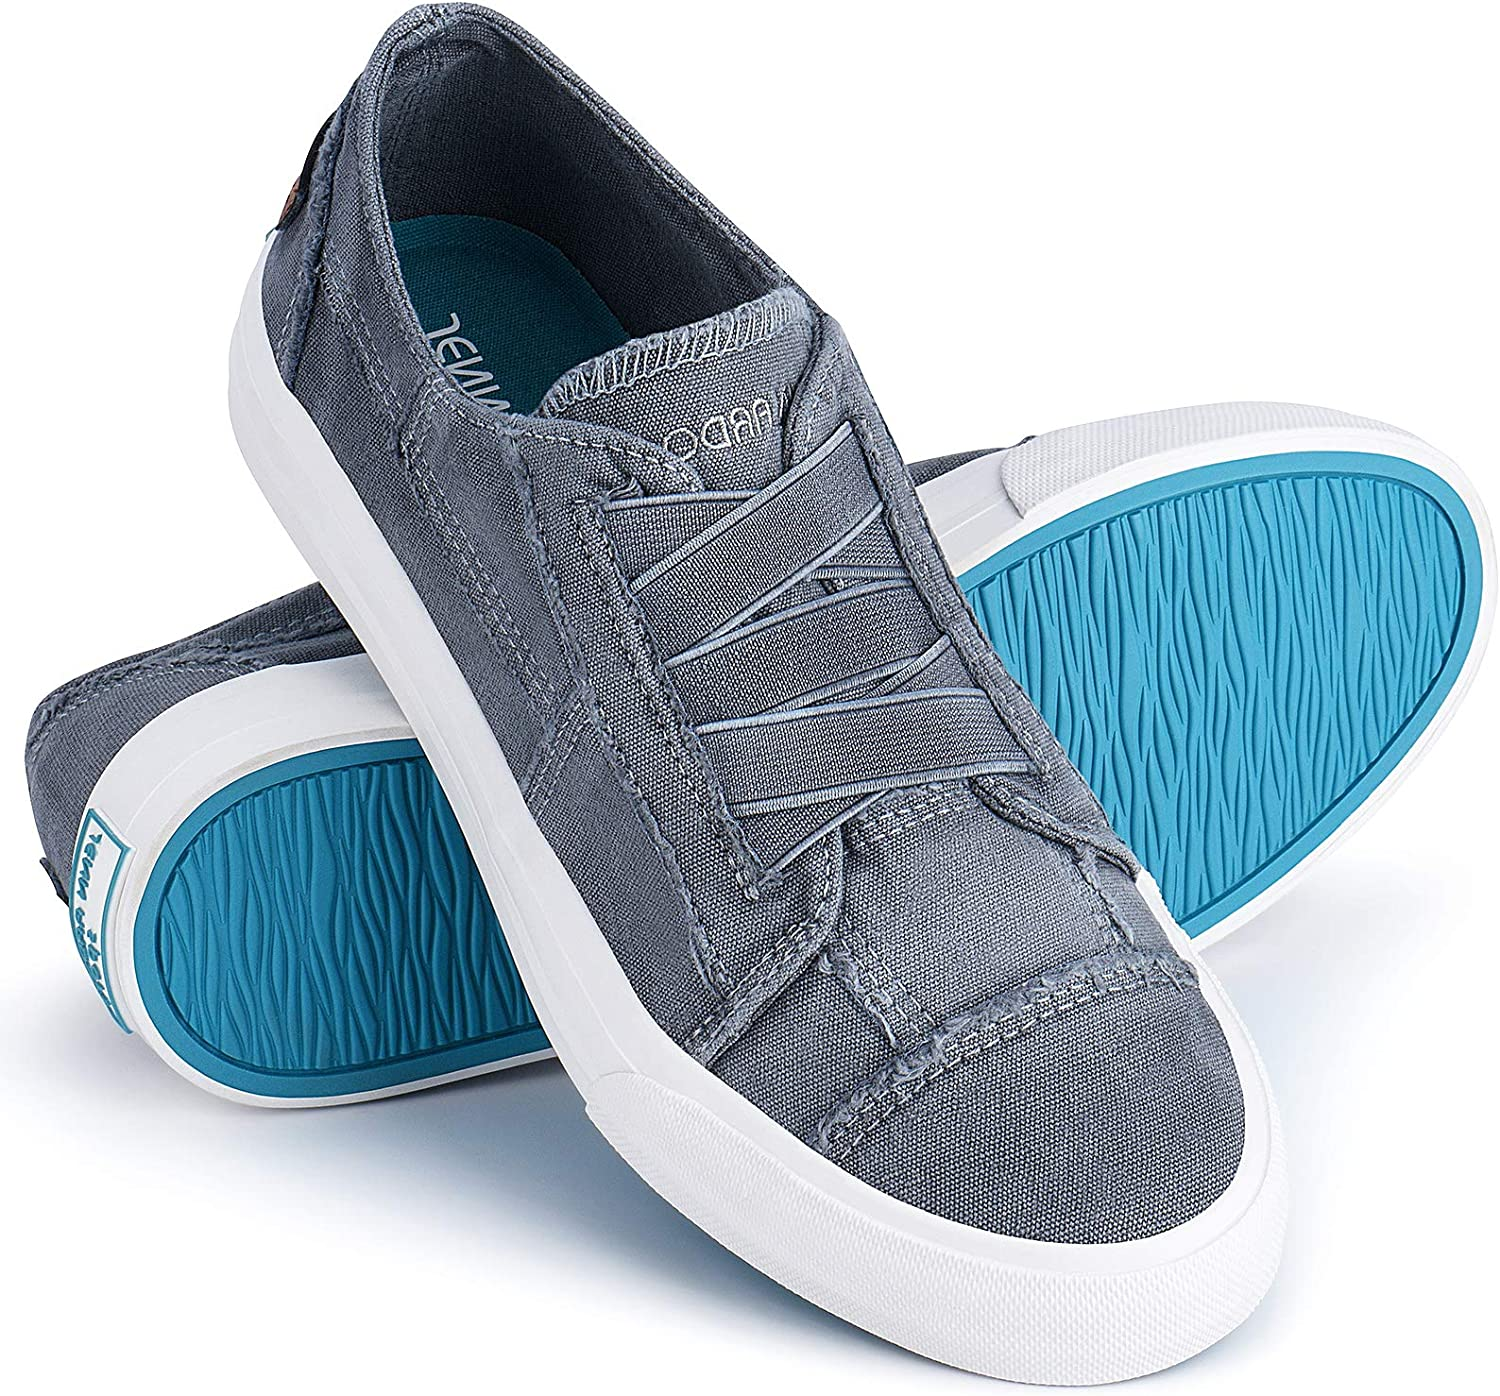 Time sale JENN ARDOR Womens Canvas Sneakers NEW before selling Unlaced Shoes Top Low Fashion